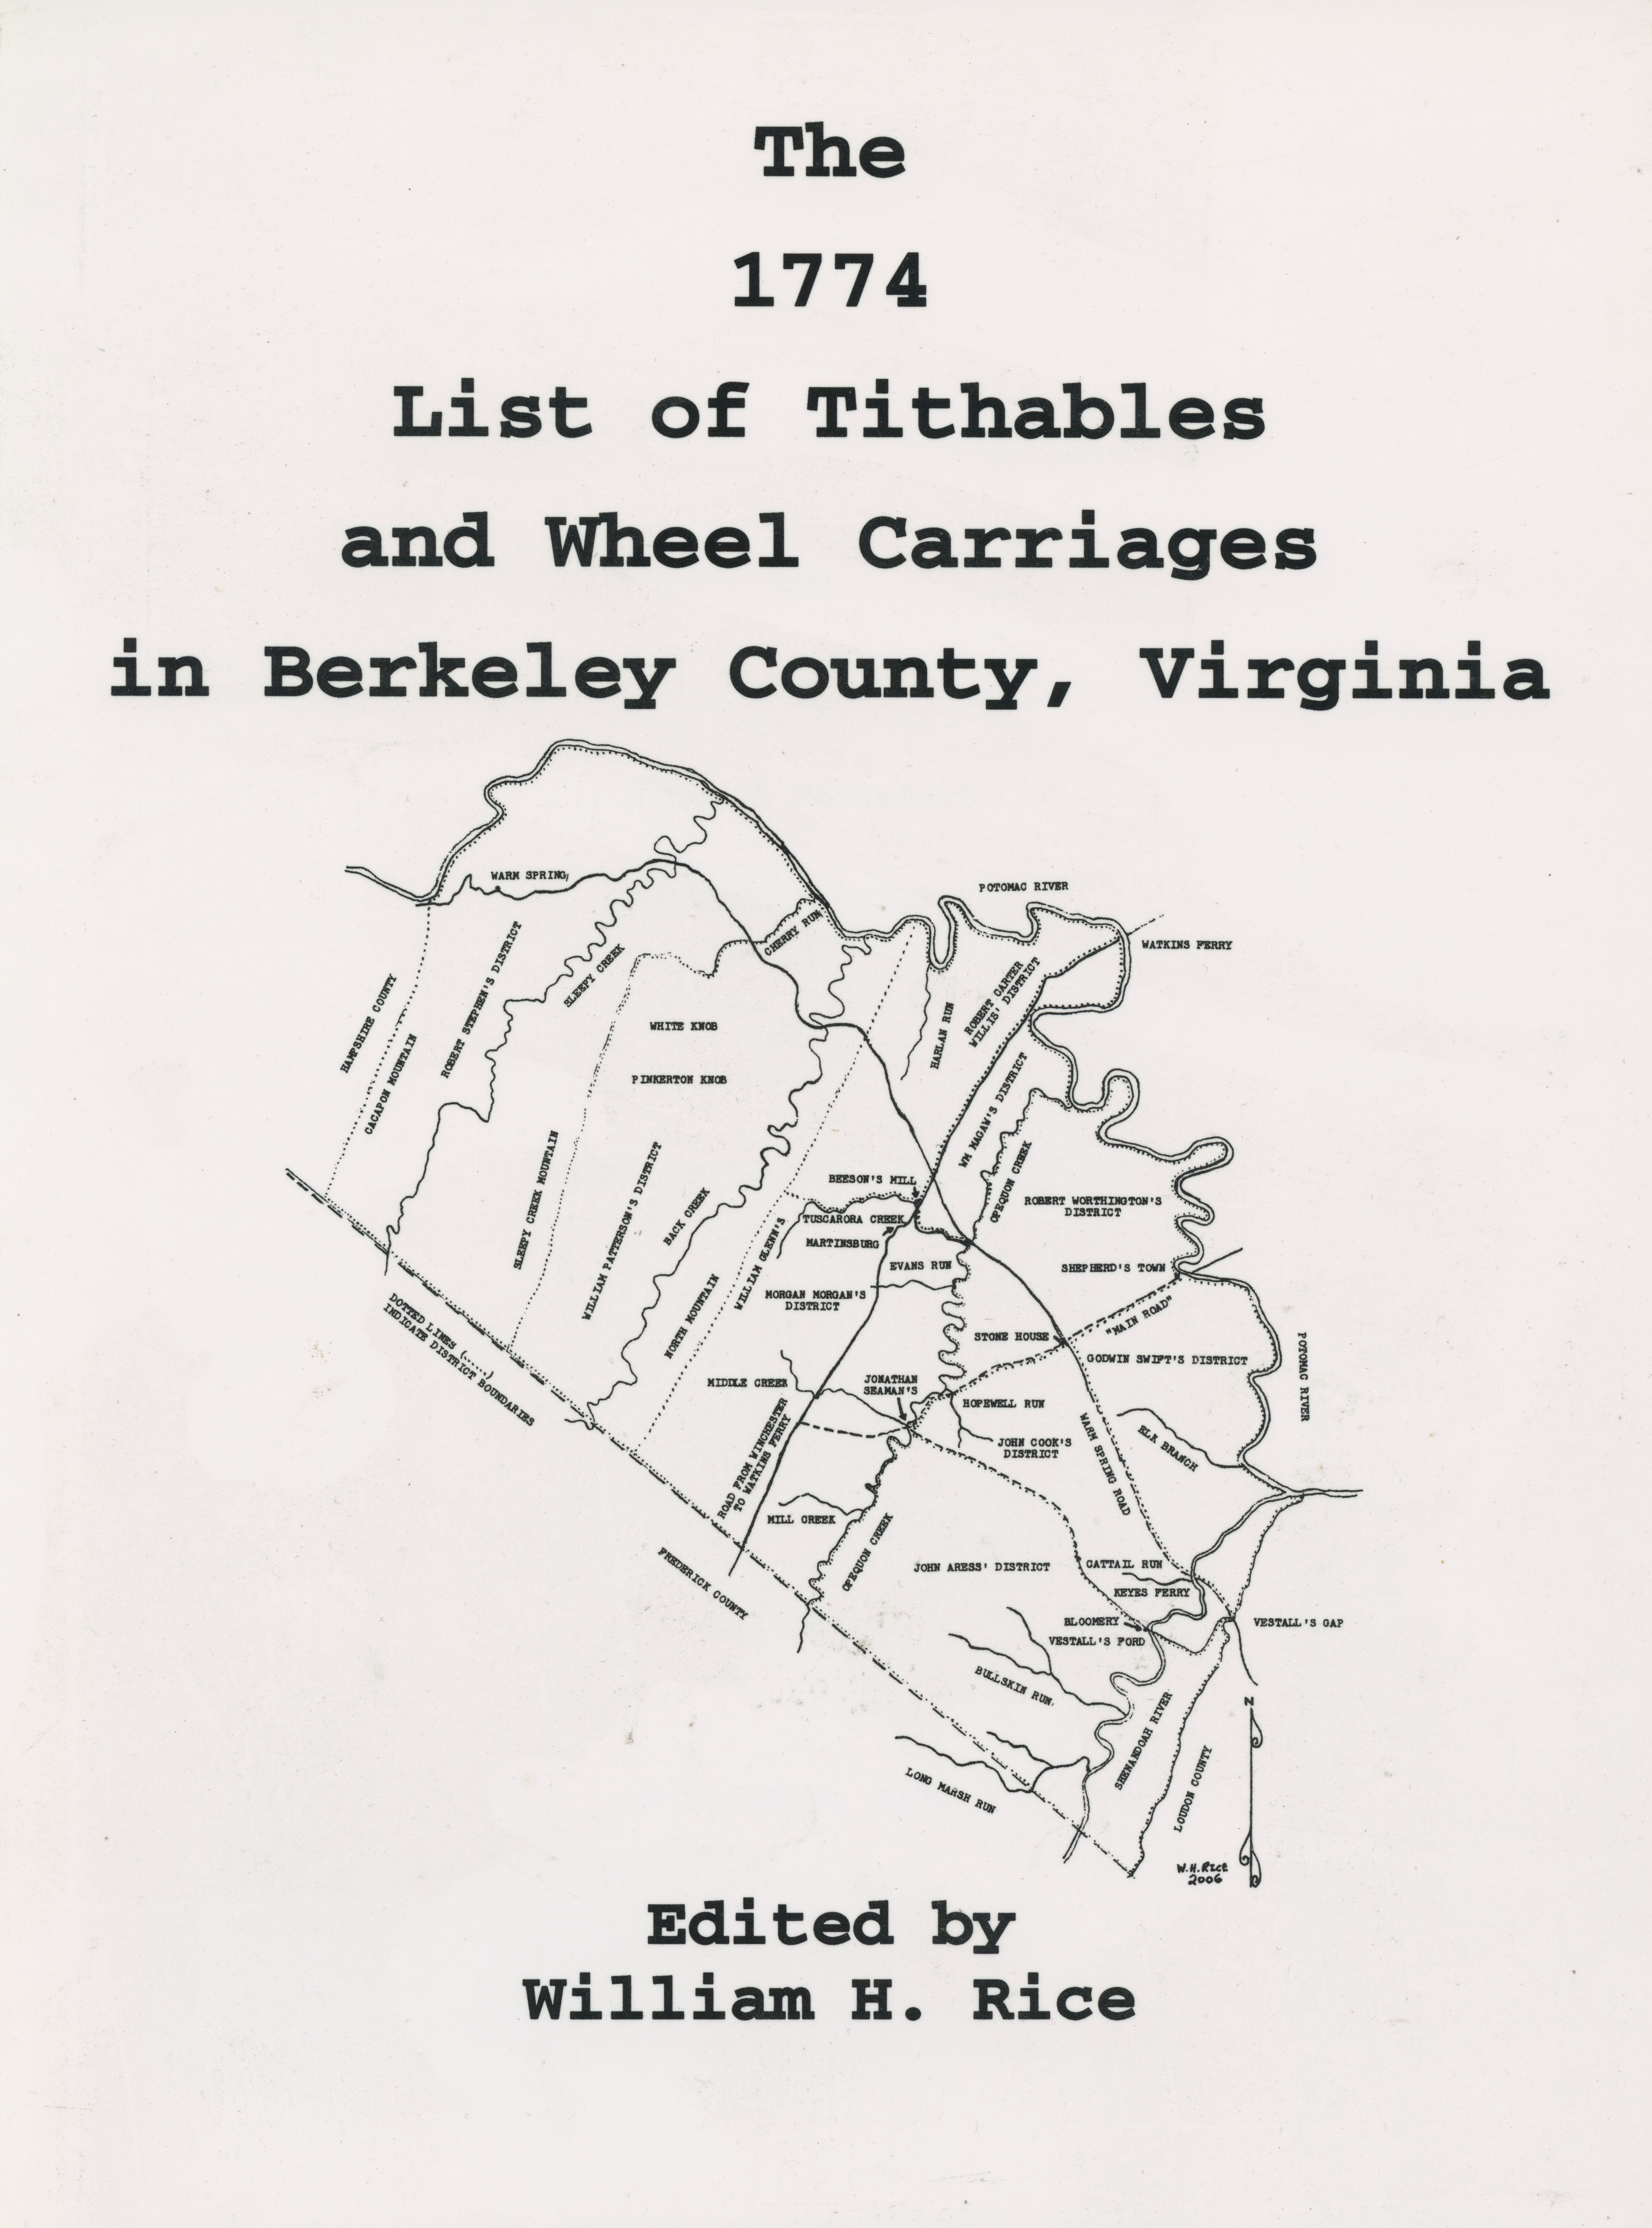 The 1774 List of Tithables and Wheel Carriages in Berkeley County, Virginia